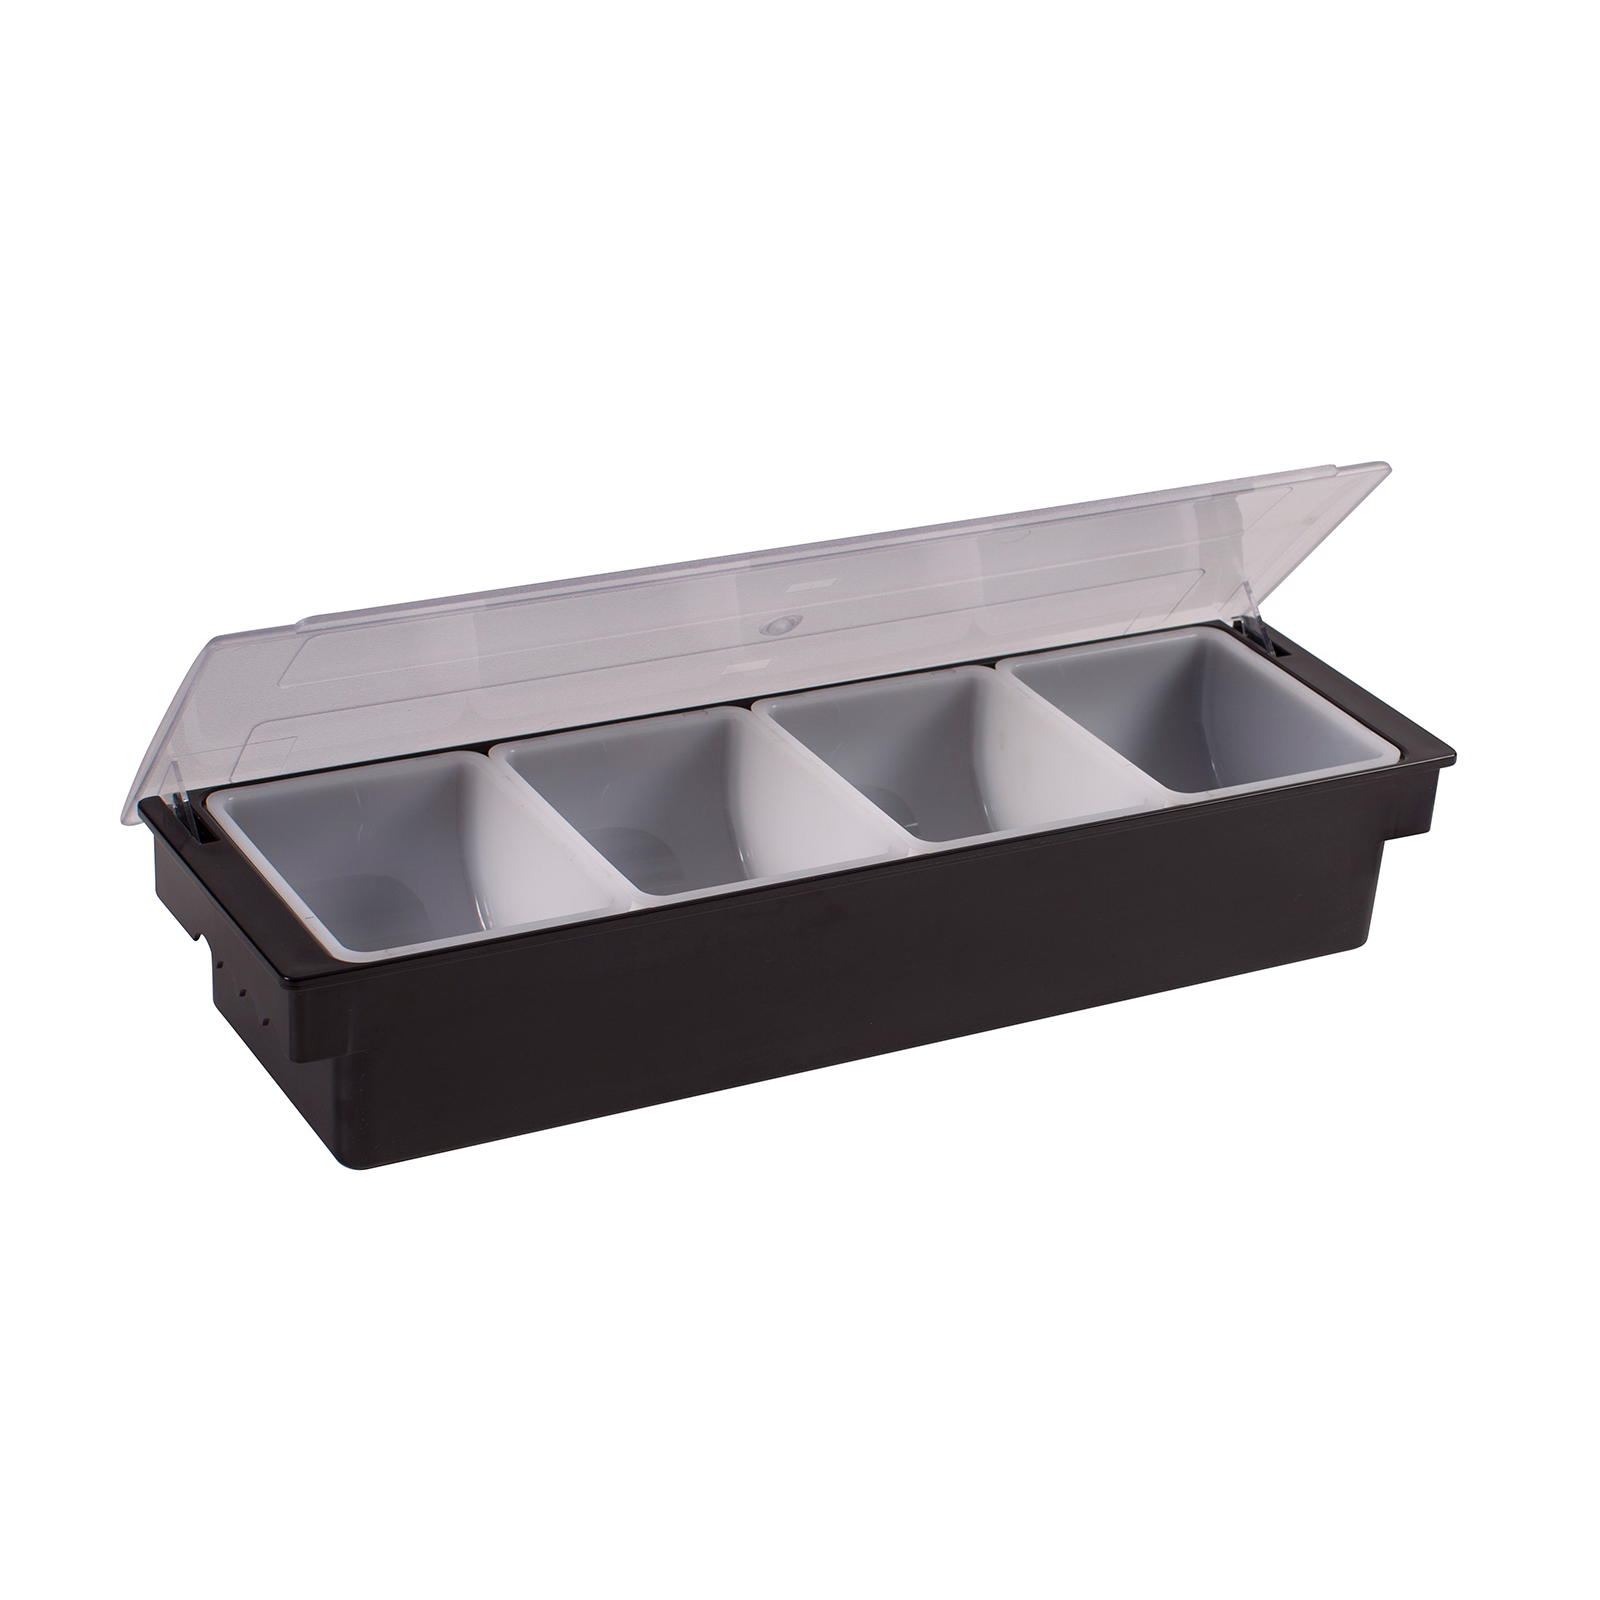 Winco CCH-4 condiment caddy, countertop organizer